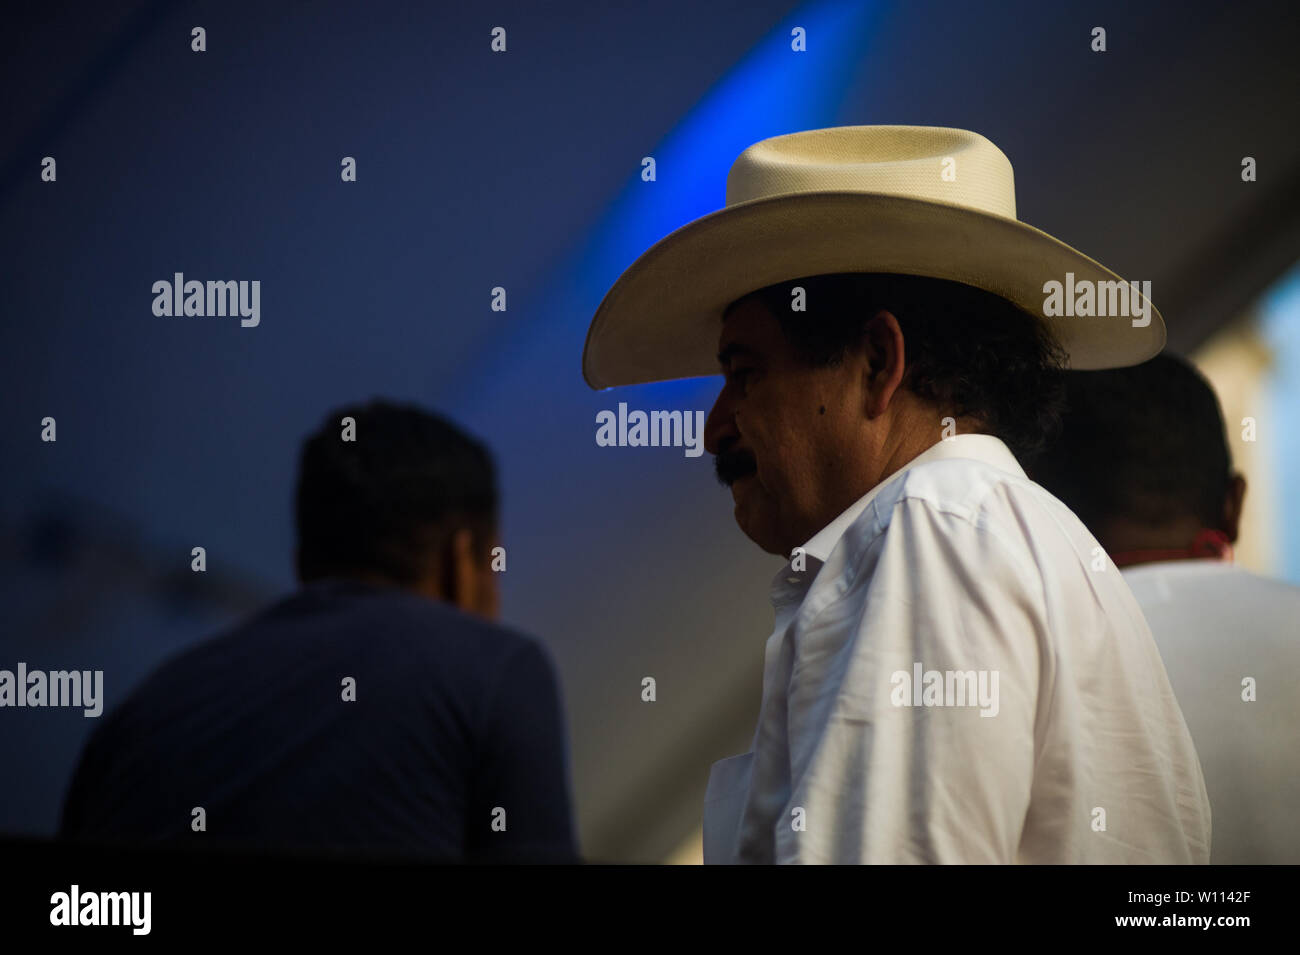 Tegucigalpa, Honduras. 29th June, 2019. Forme Honduras President MANUEL ZELAYA takes part in a concert to commemorate the 10 year coup anniversary Credit: Camilo Freedman/ZUMA Wire/Alamy Live News Stock Photo